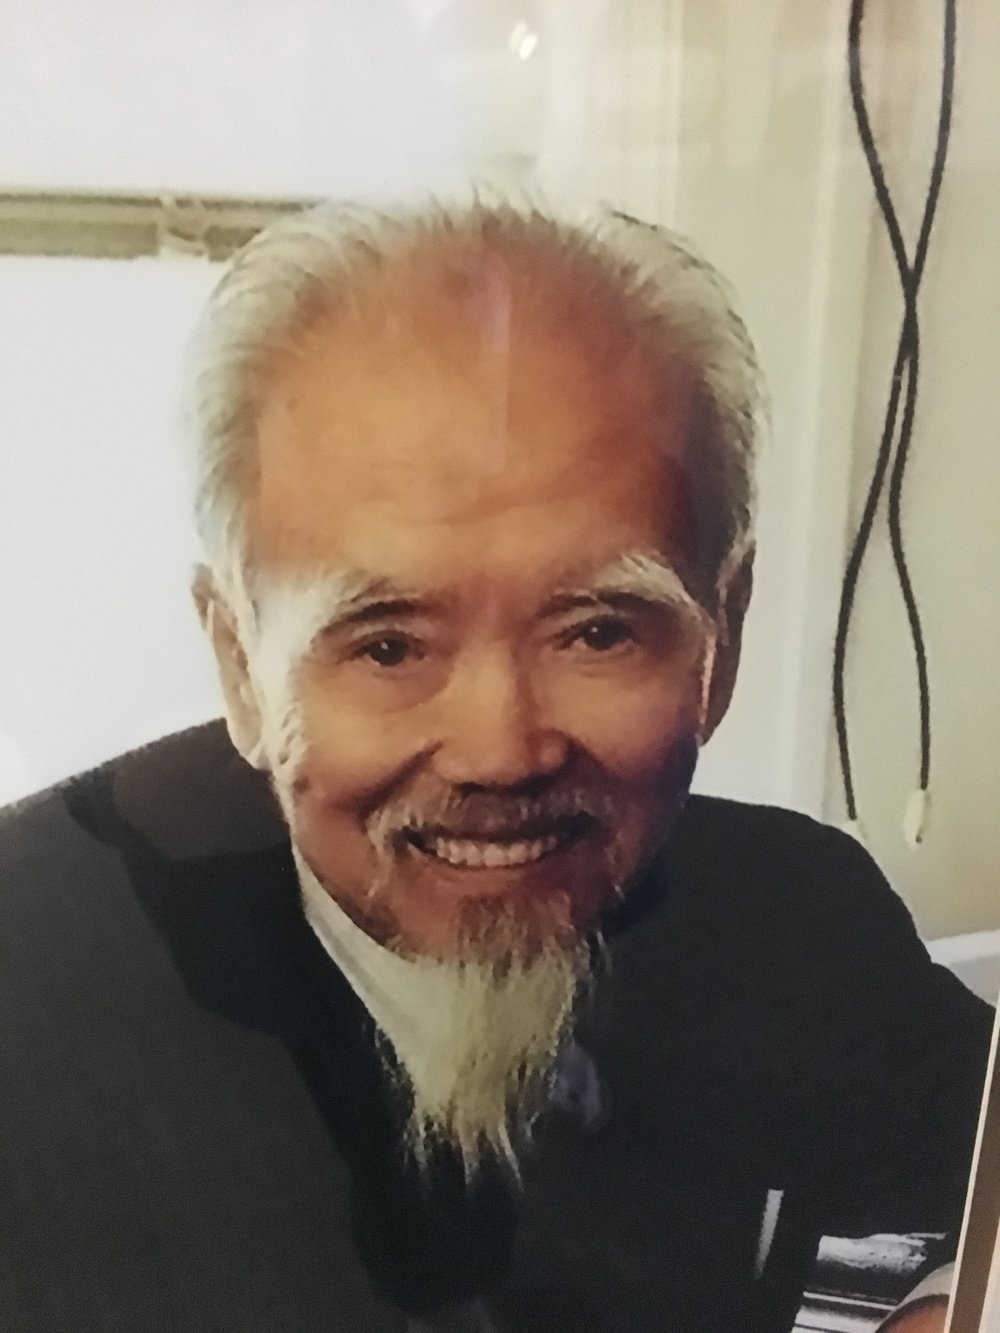 Dr. Wang Shih Chang